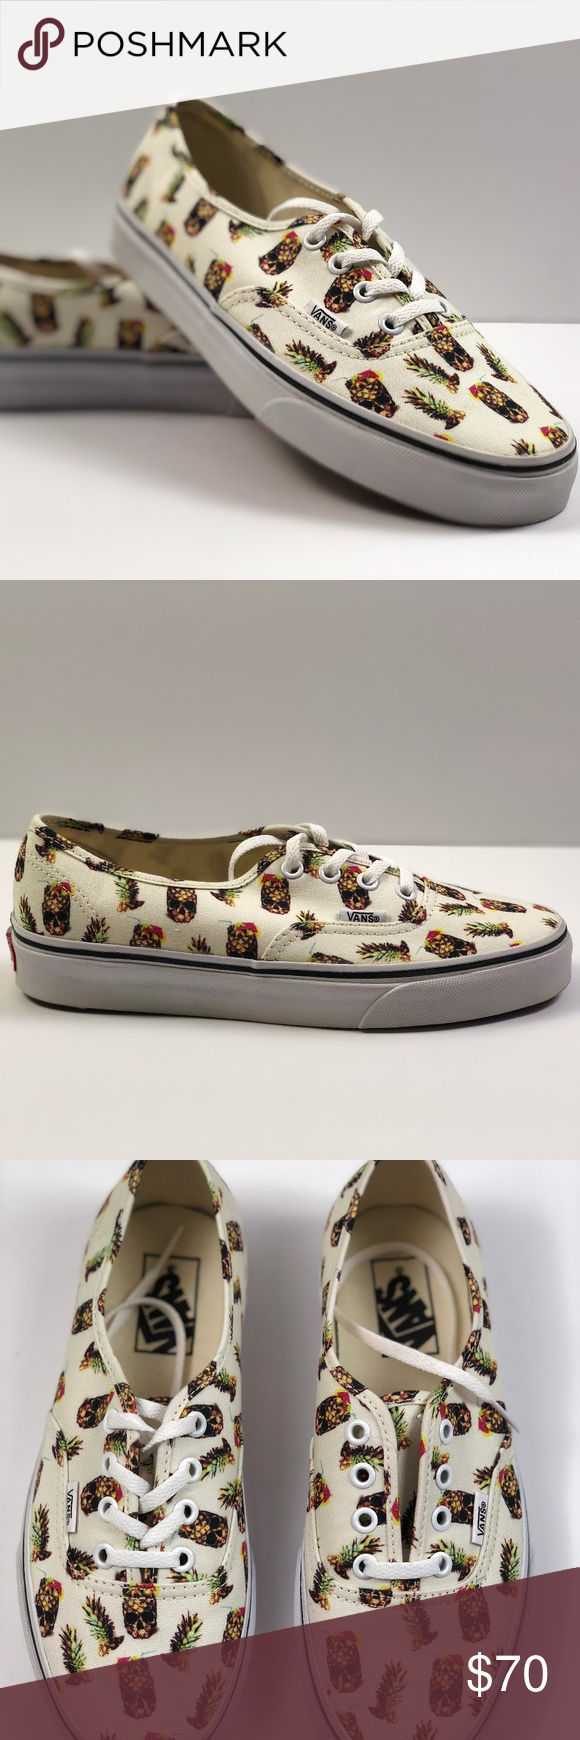 92a373e07b55 Vans Authentic Drained and Confused White. Condition  New with box. Size   Women s 7.5